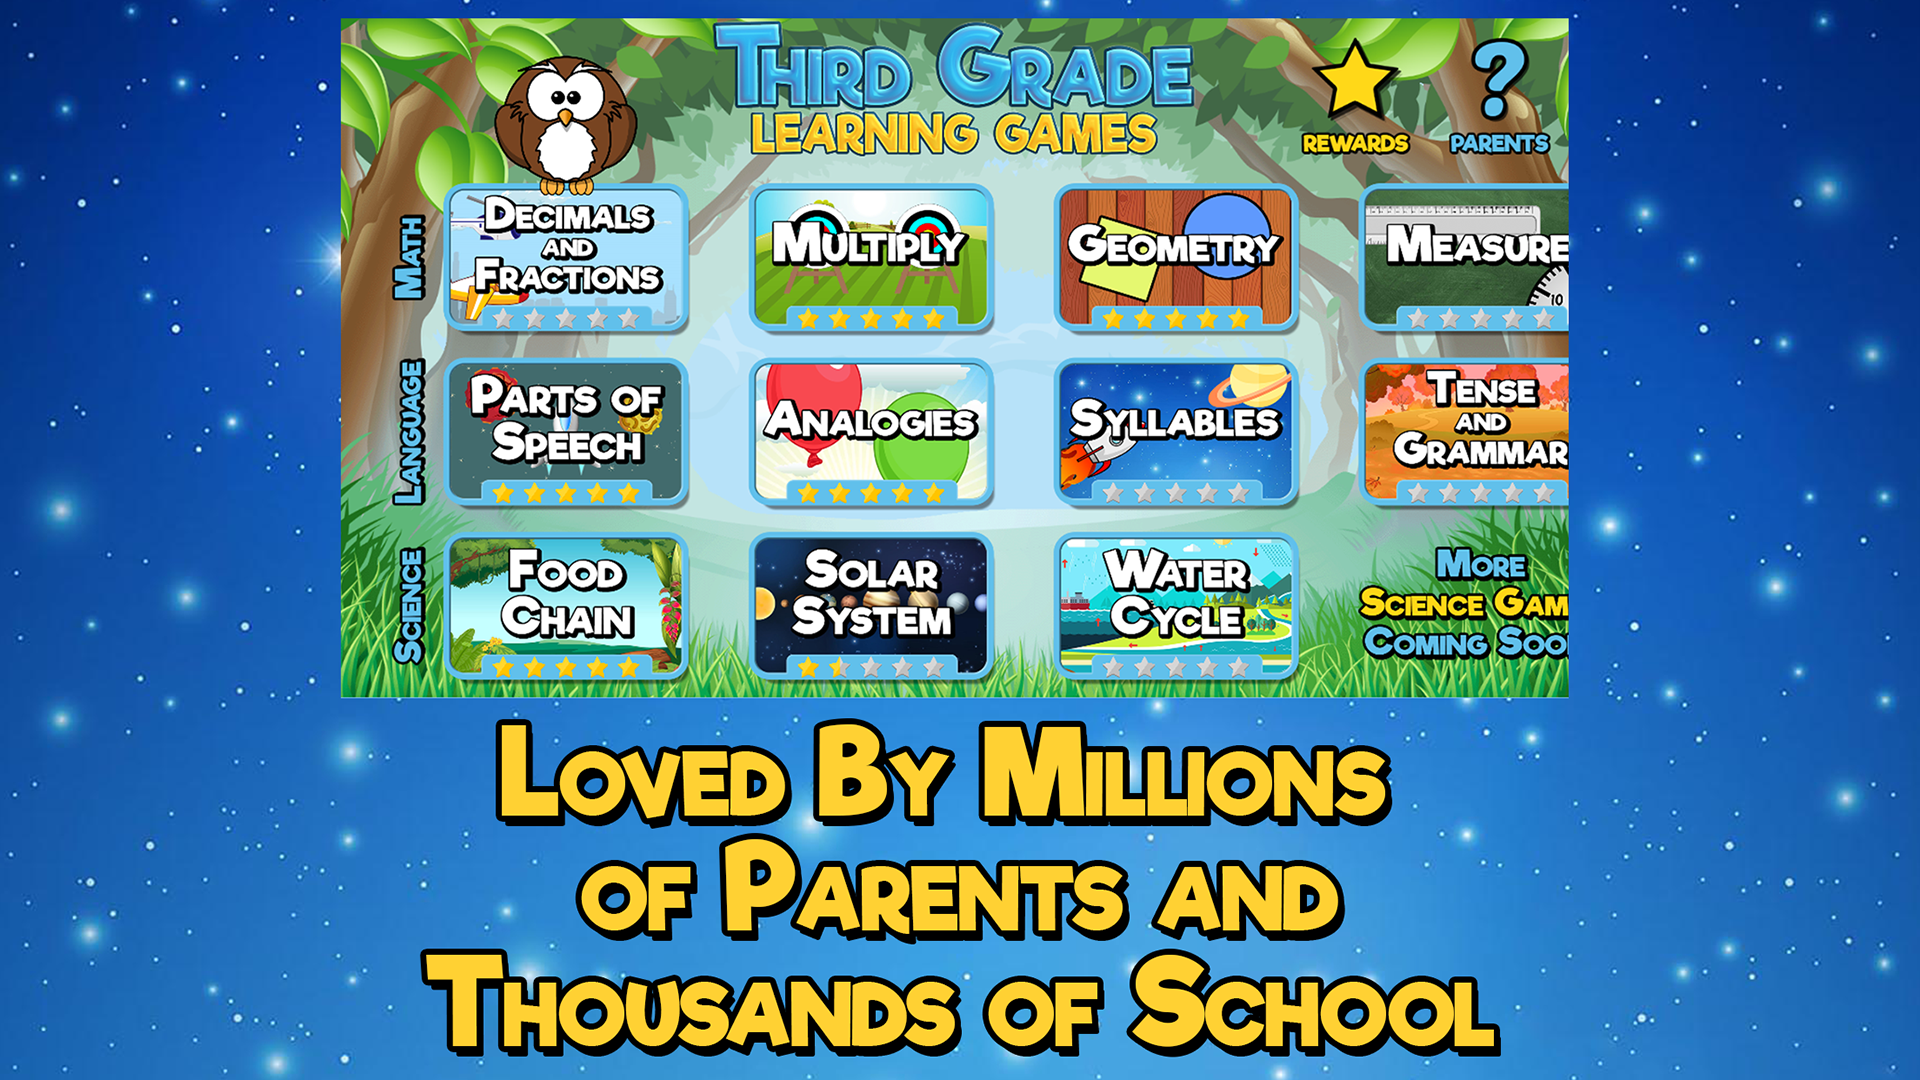 Amazon.com: Third Grade Learning Games Free: Appstore for